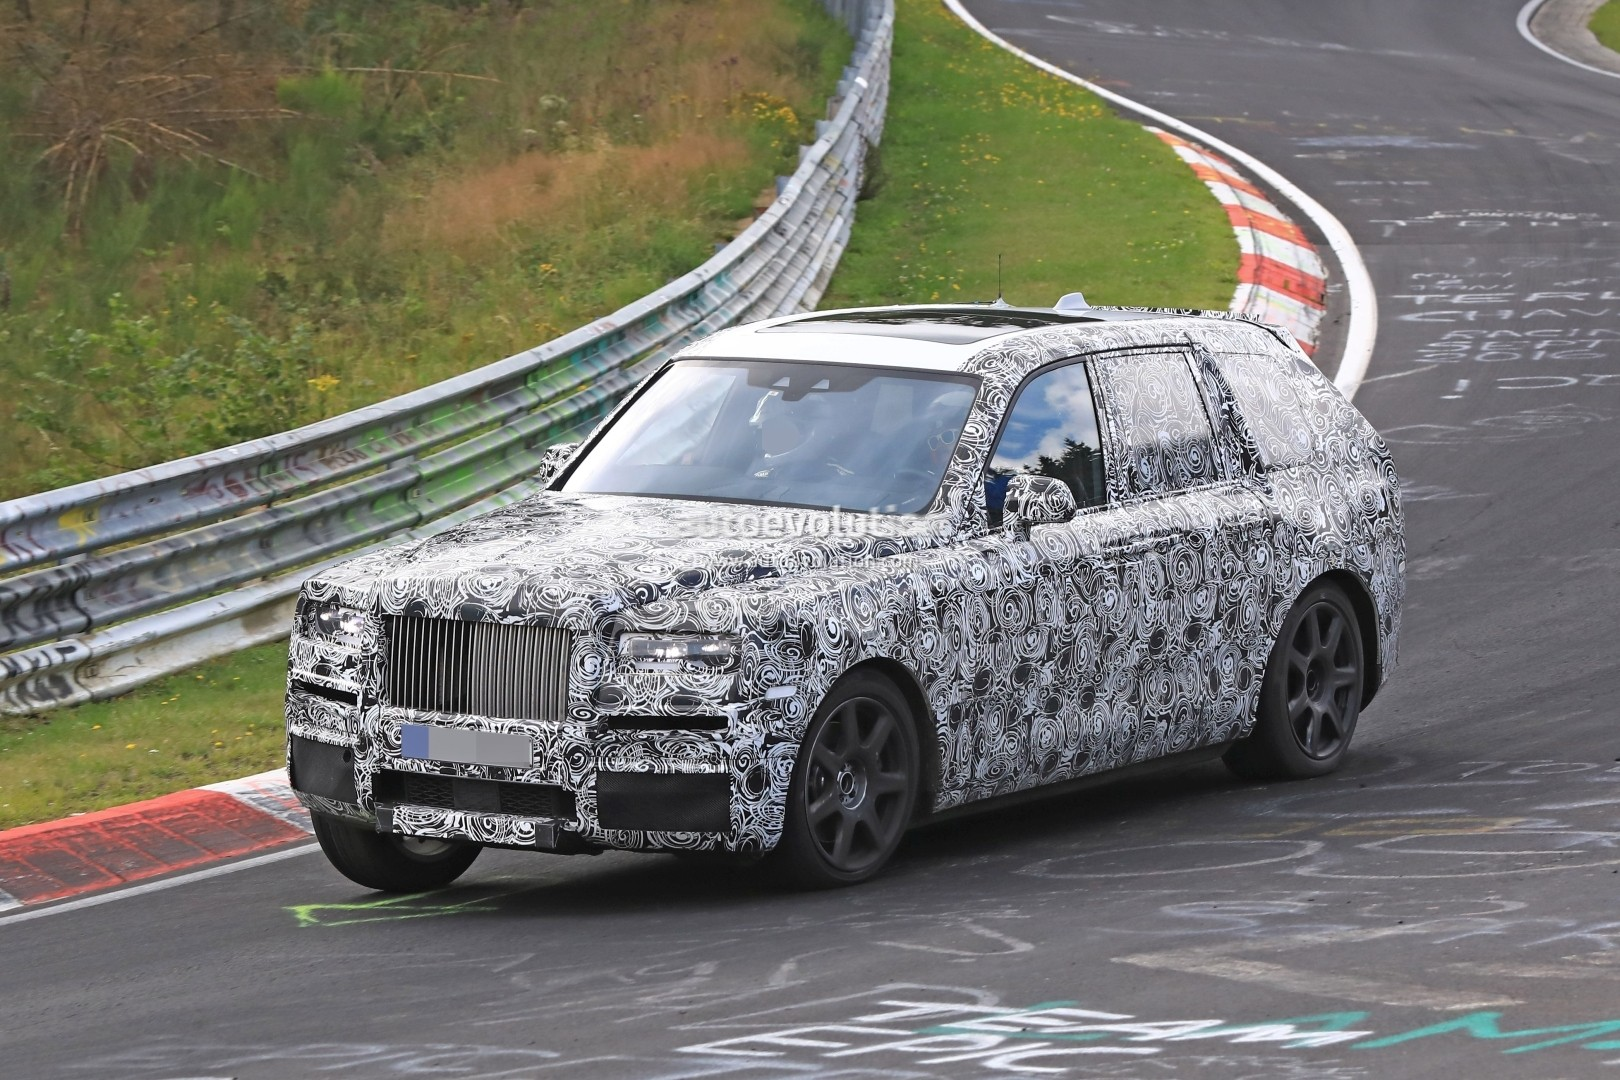 New Rolls-Royce Phantom wafts in